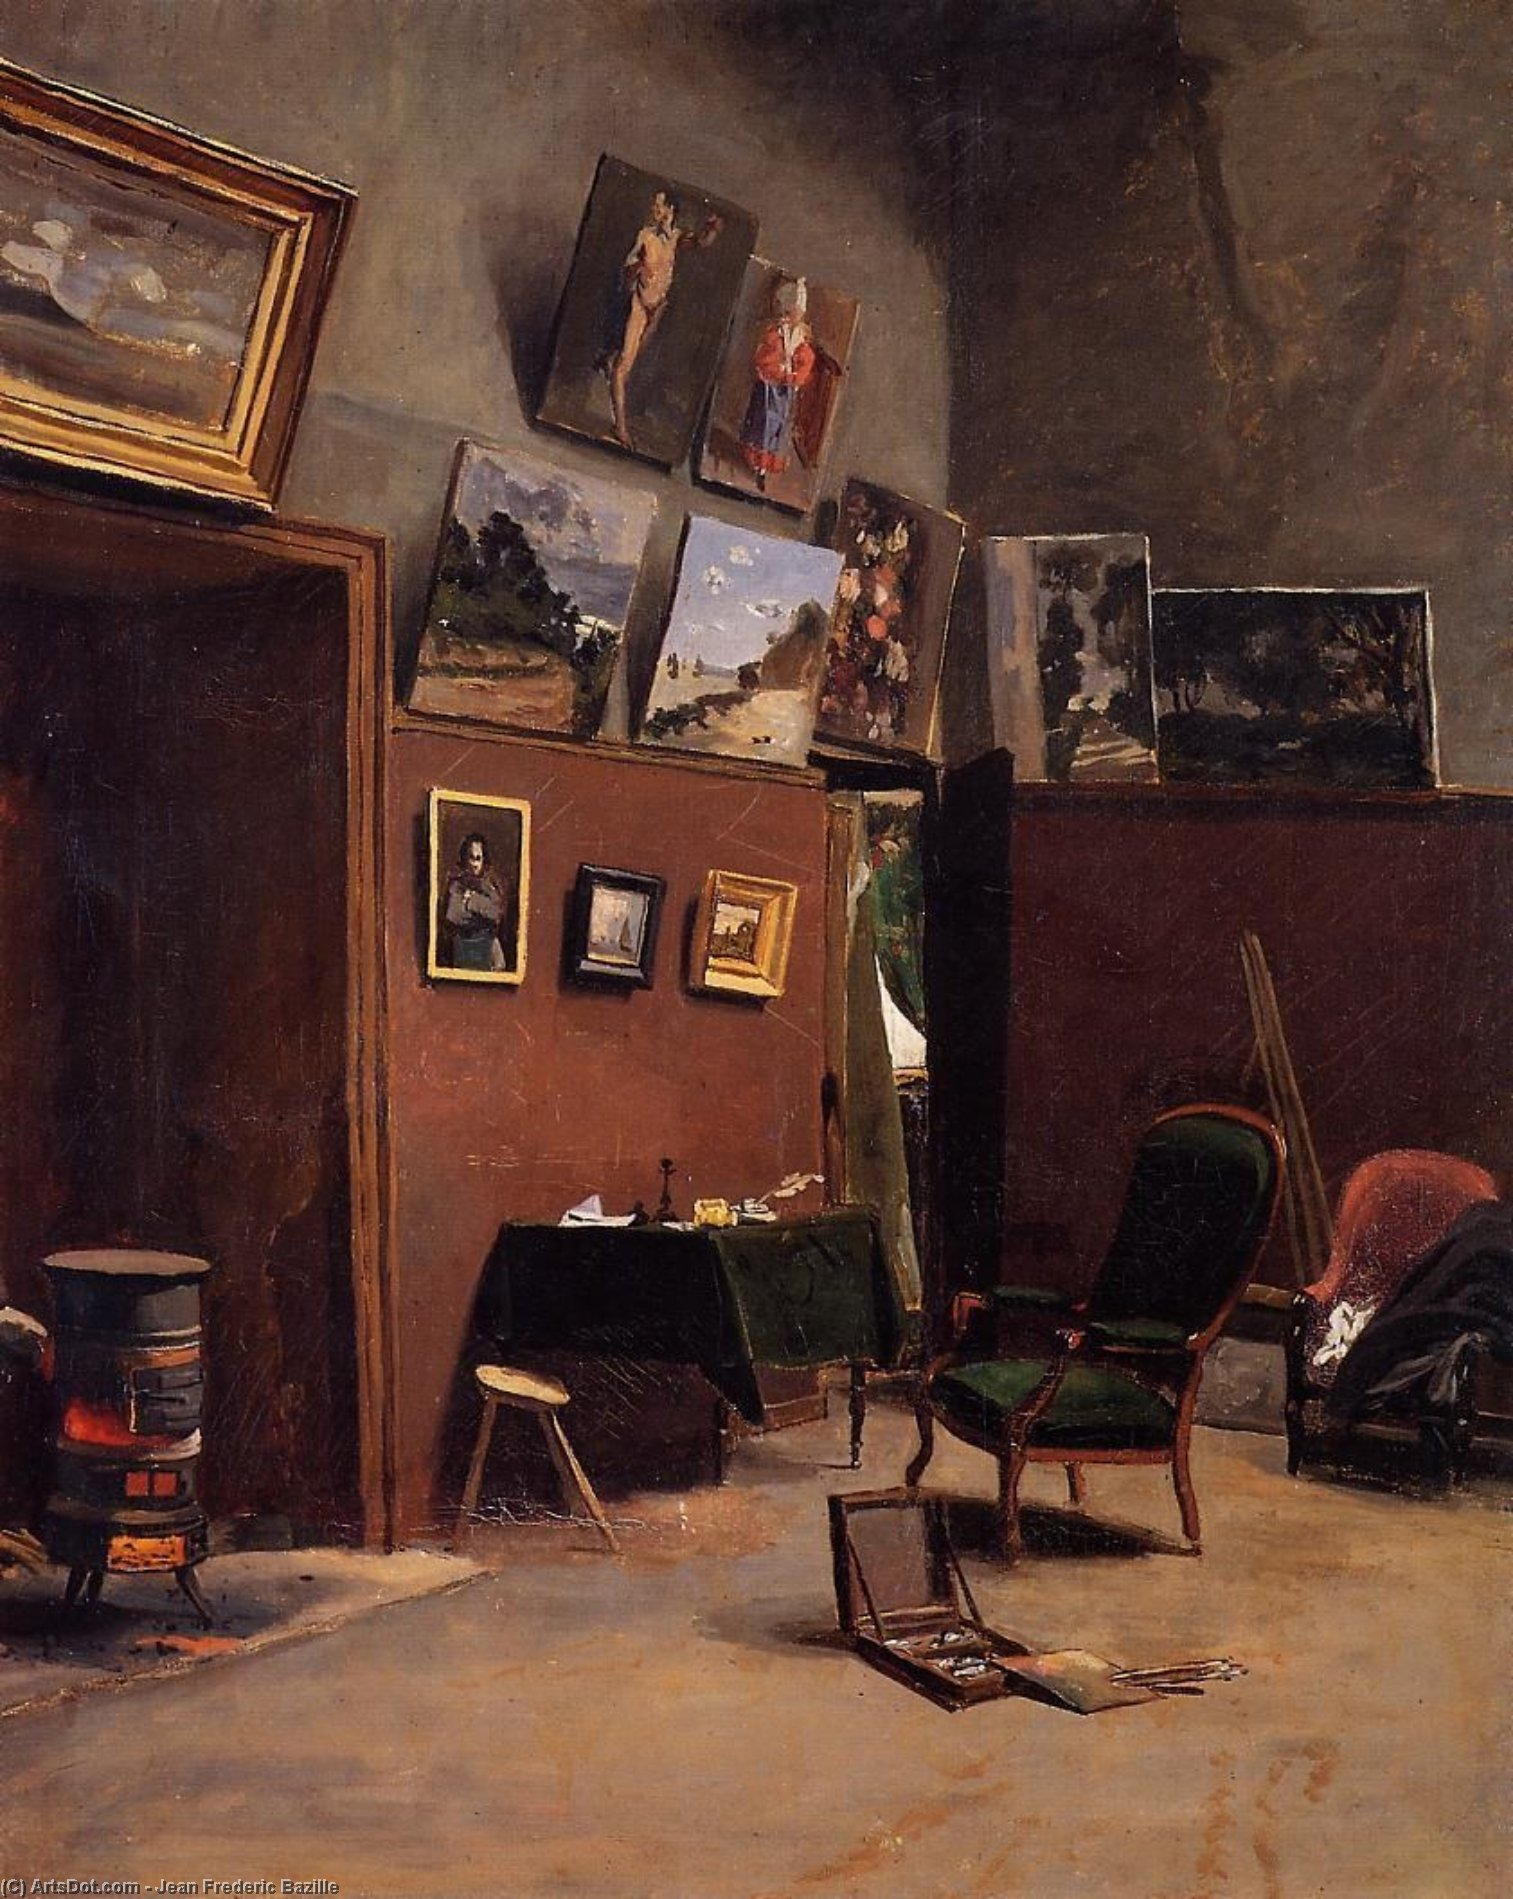 Wikioo.org - The Encyclopedia of Fine Arts - Painting, Artwork by Jean Frederic Bazille - The Studio on the Rue de Furstenberg